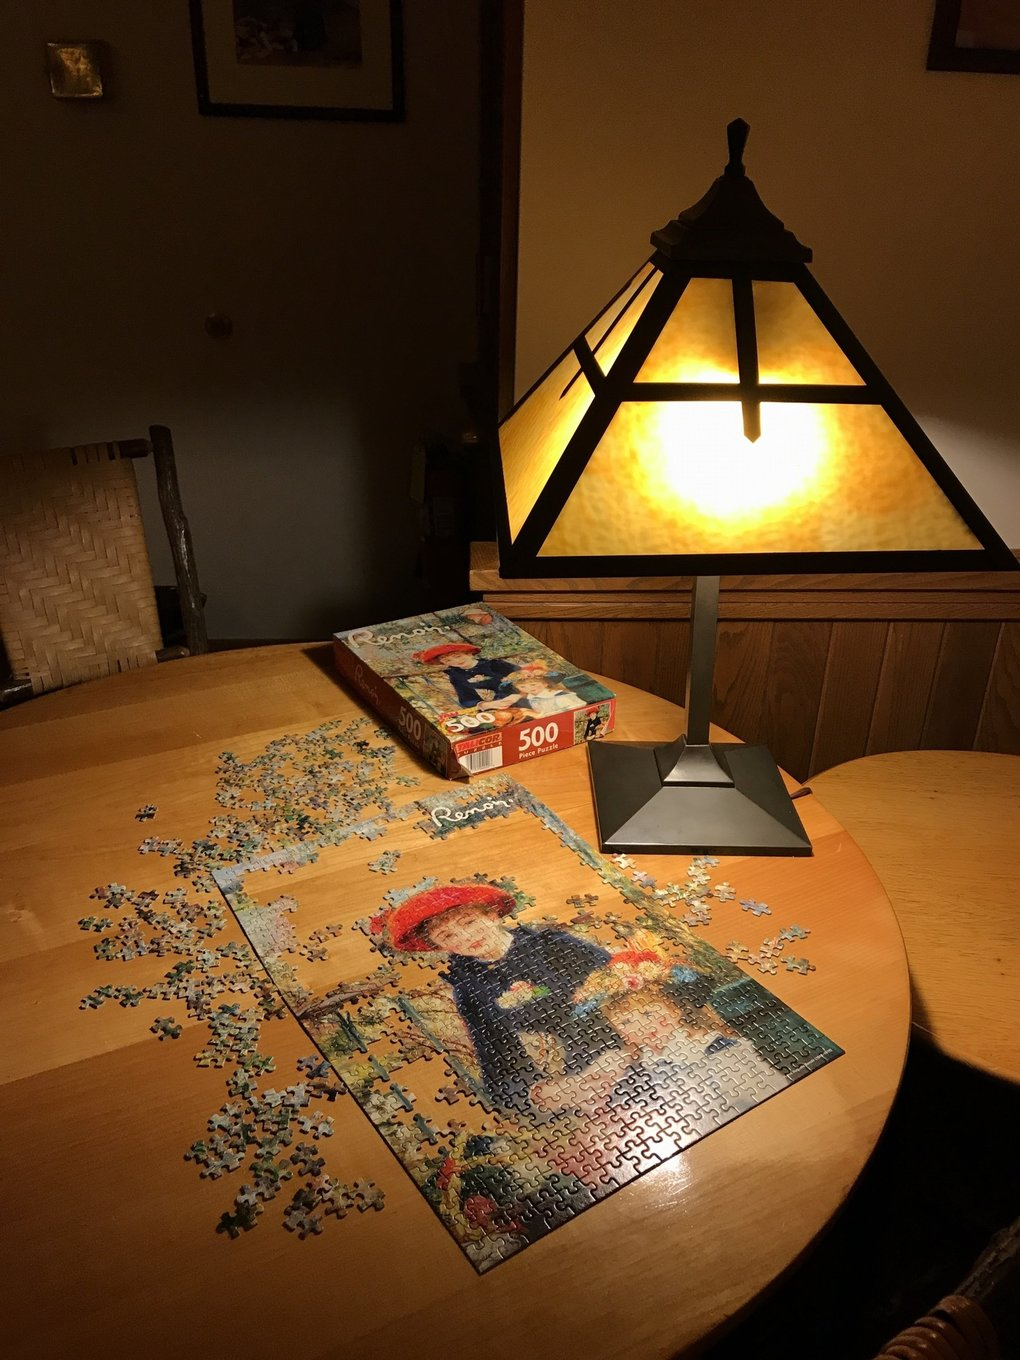 Winter visitors to the National Park Inn at Mount Rainier pass the time sitting before the fire, reading and putting together jigsaw puzzles.  (Carol Pucci / Special to The Seattle Times)